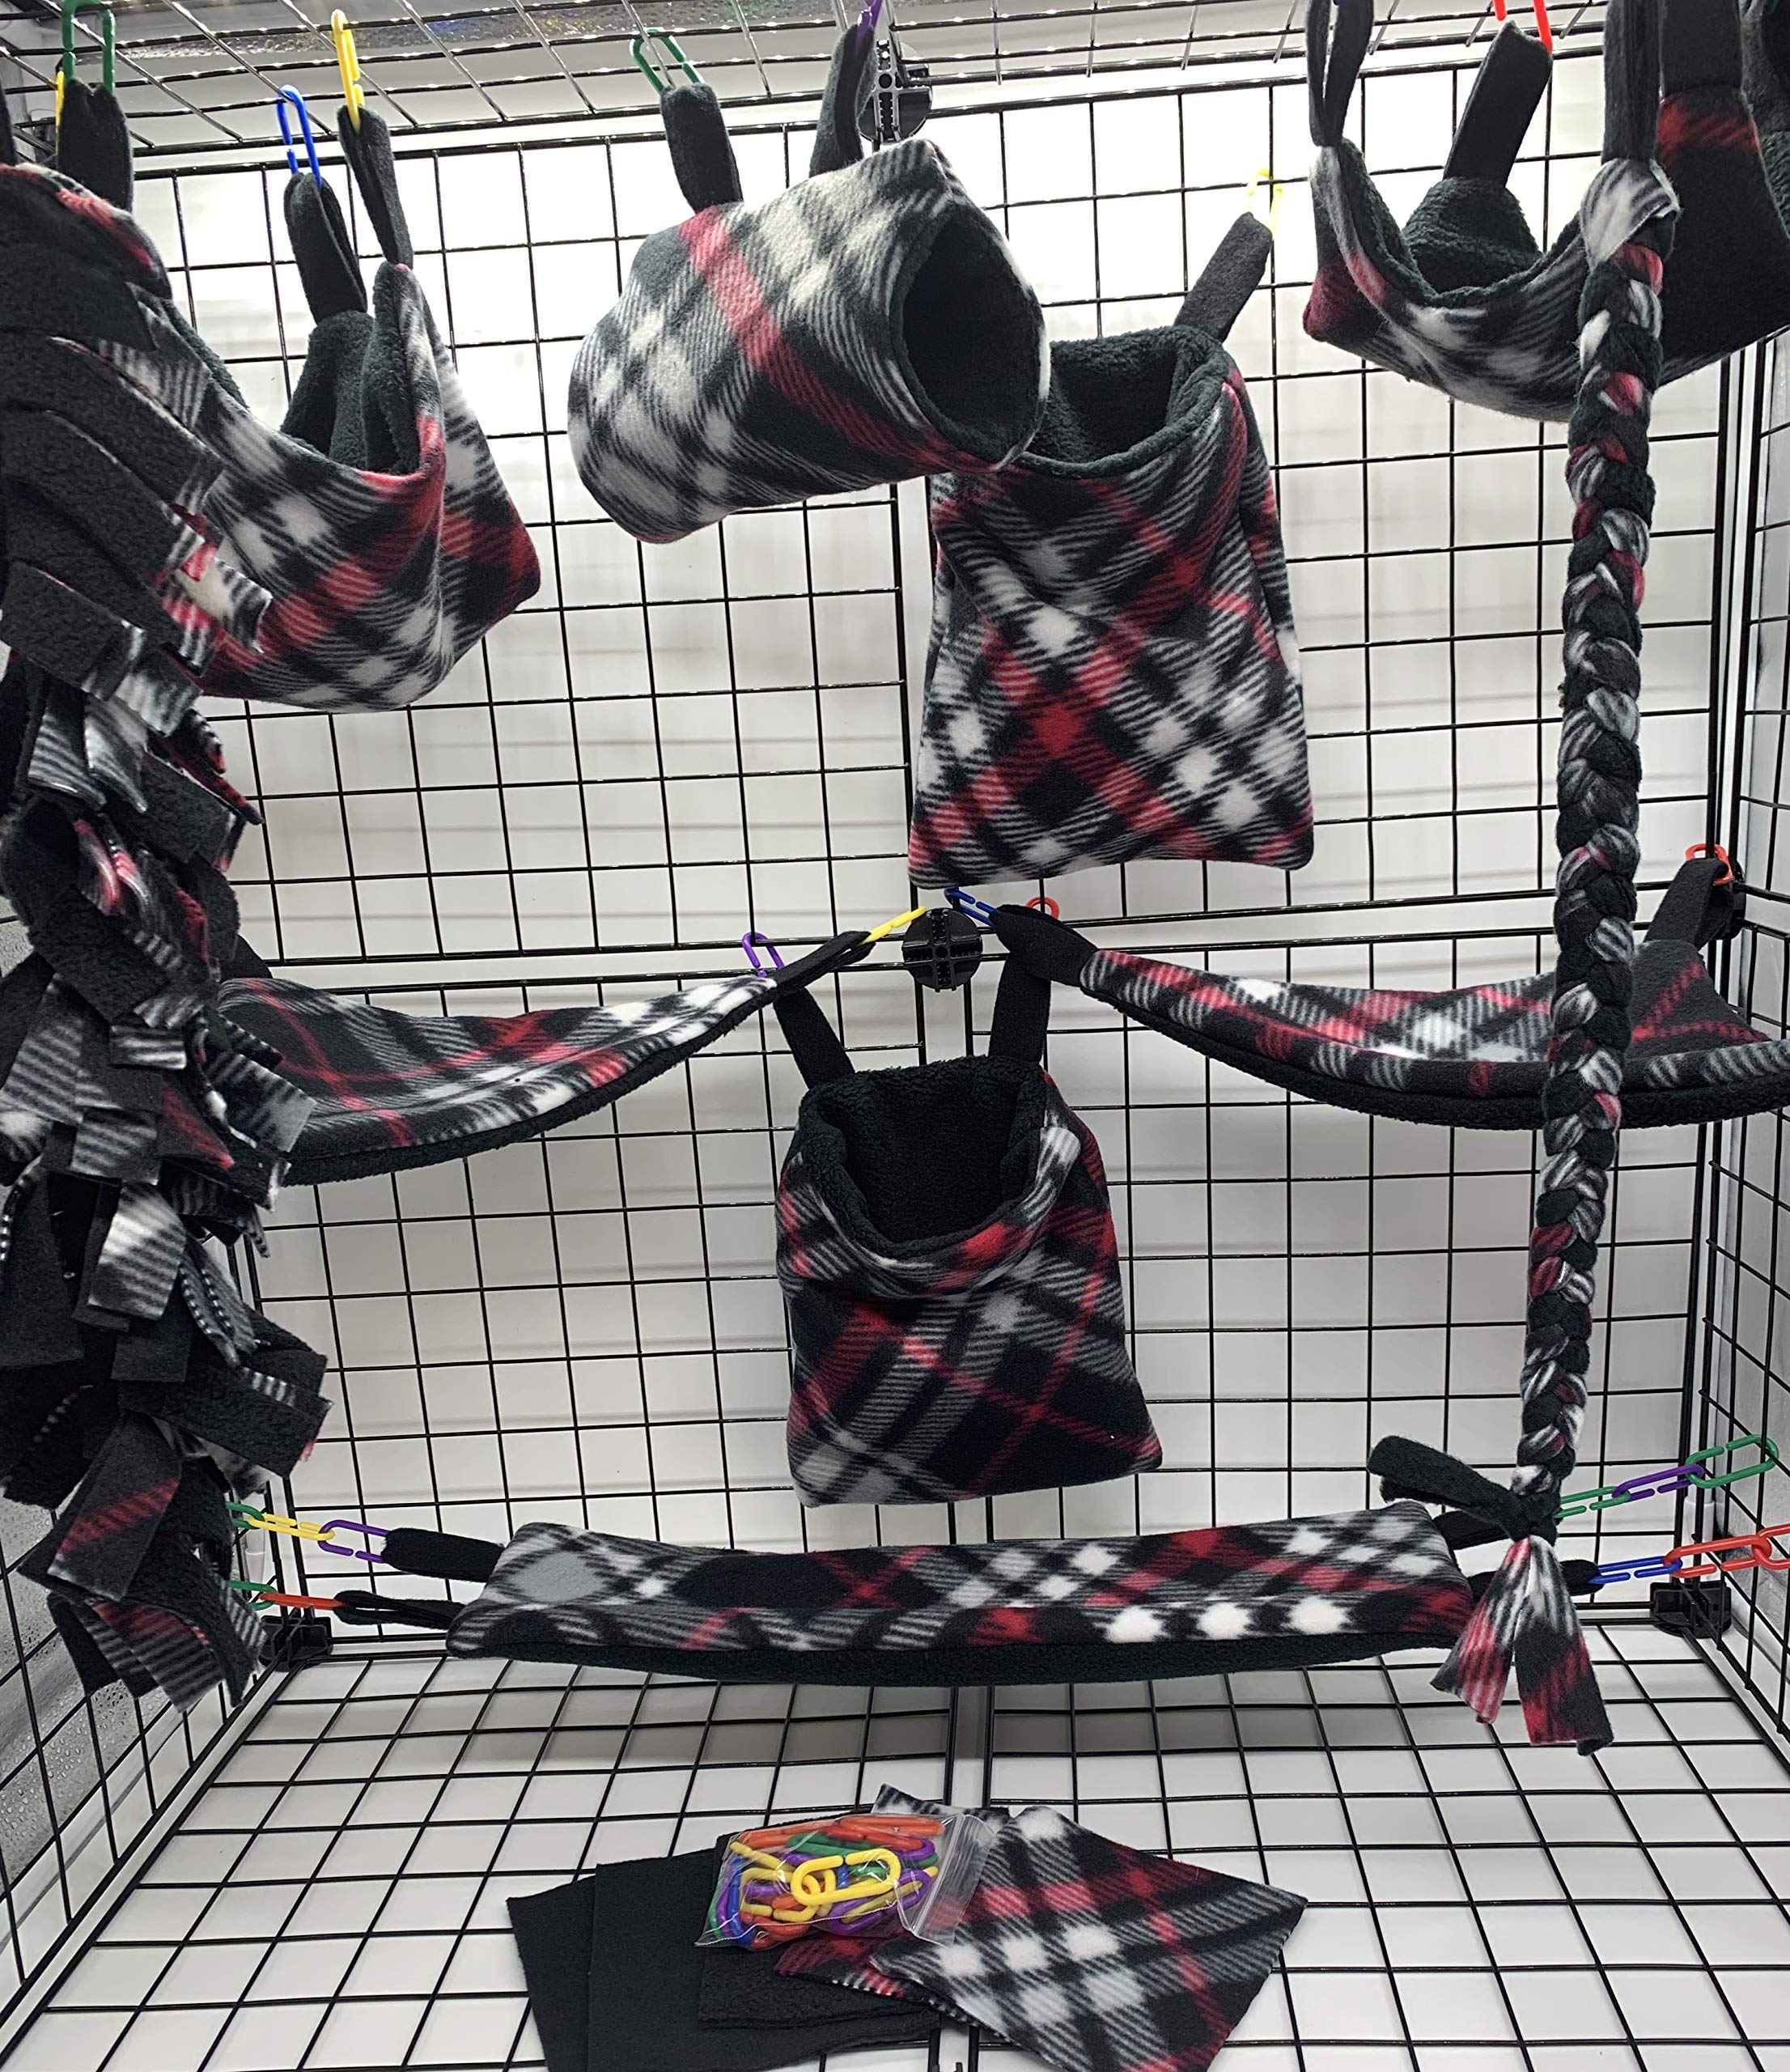 The Kozy Kritter 15 Piece Red Black and White Sugar Glider Cage Set